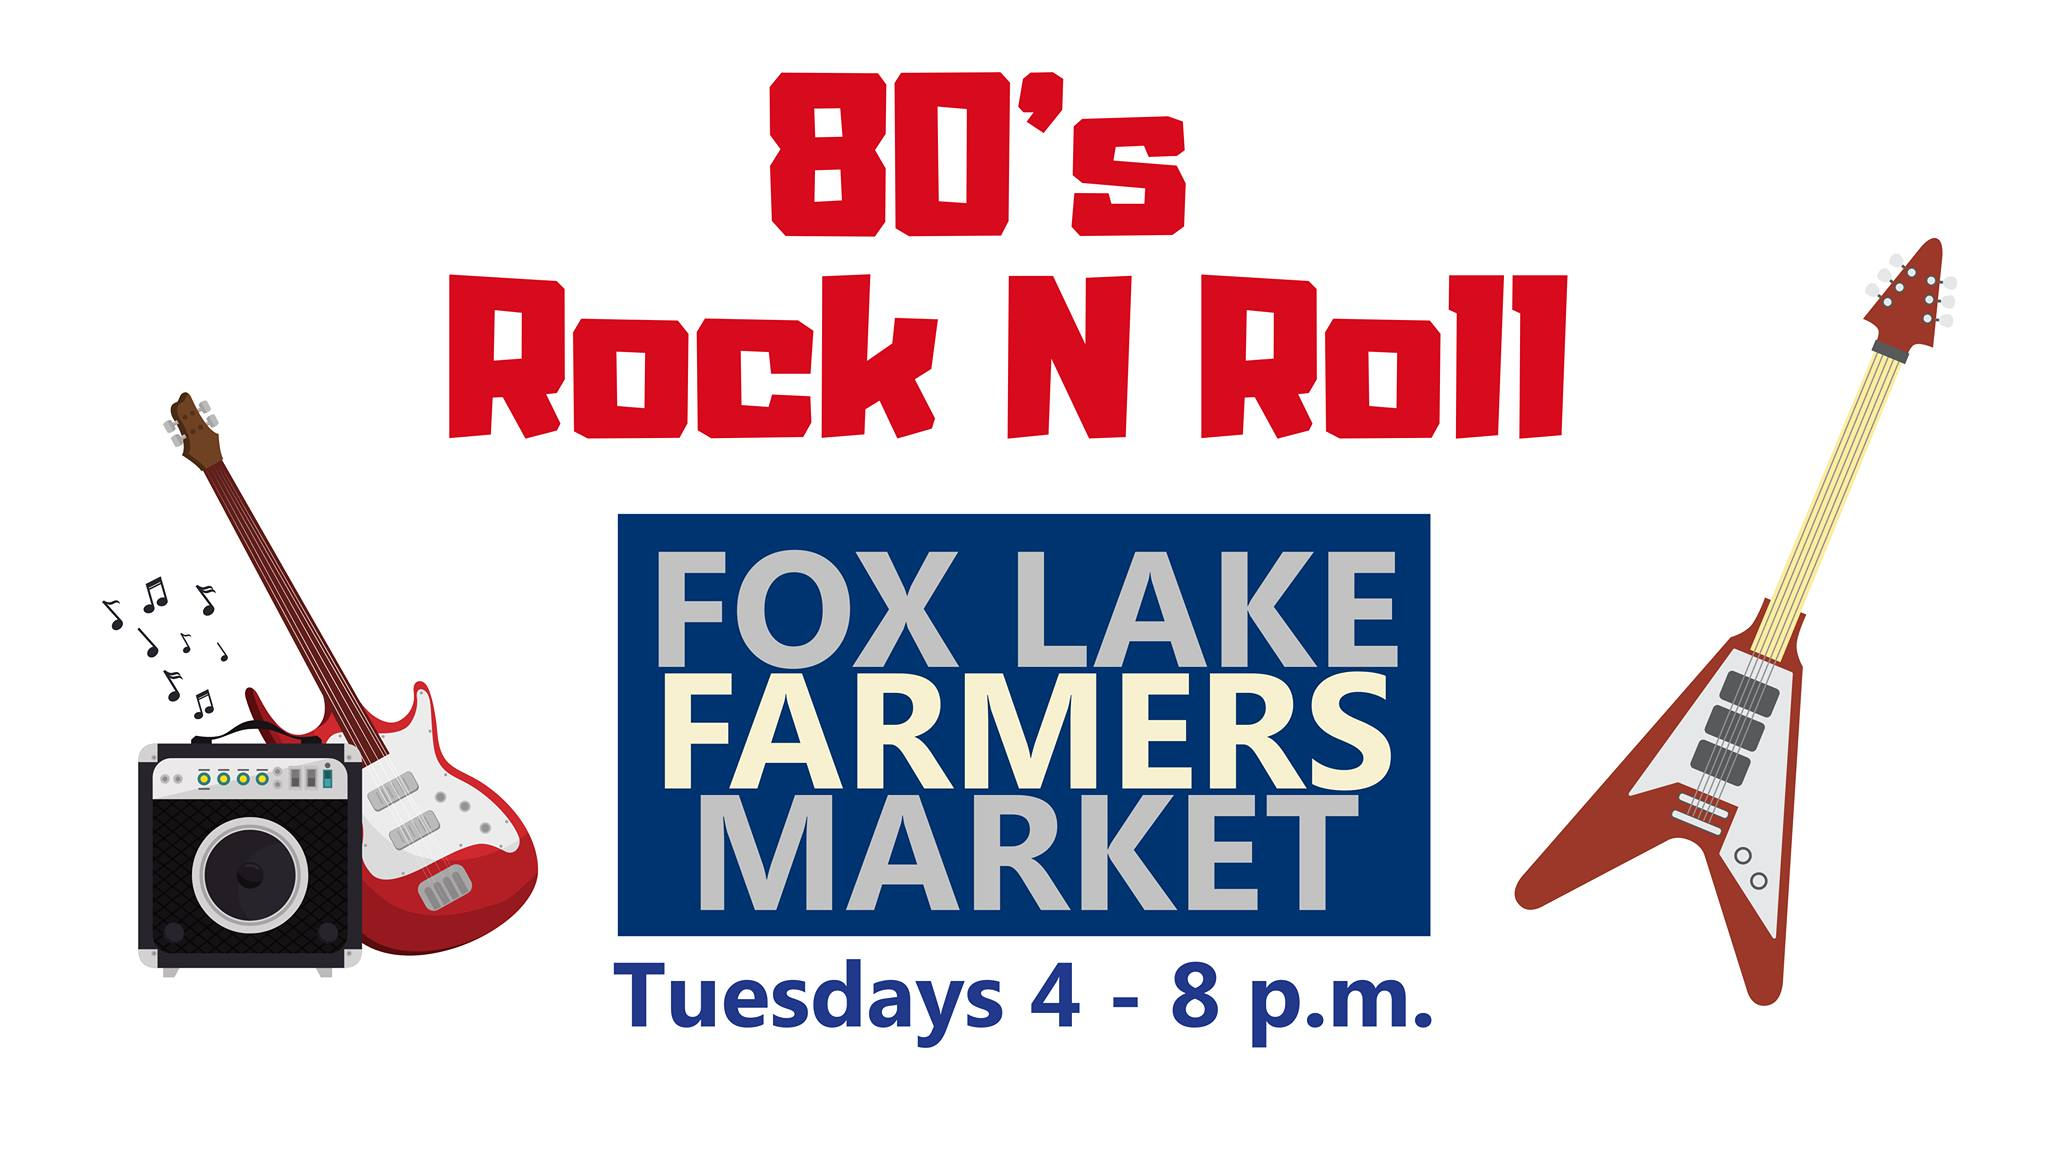 80's Rock N Roll at the Fox Lake Farmers Market